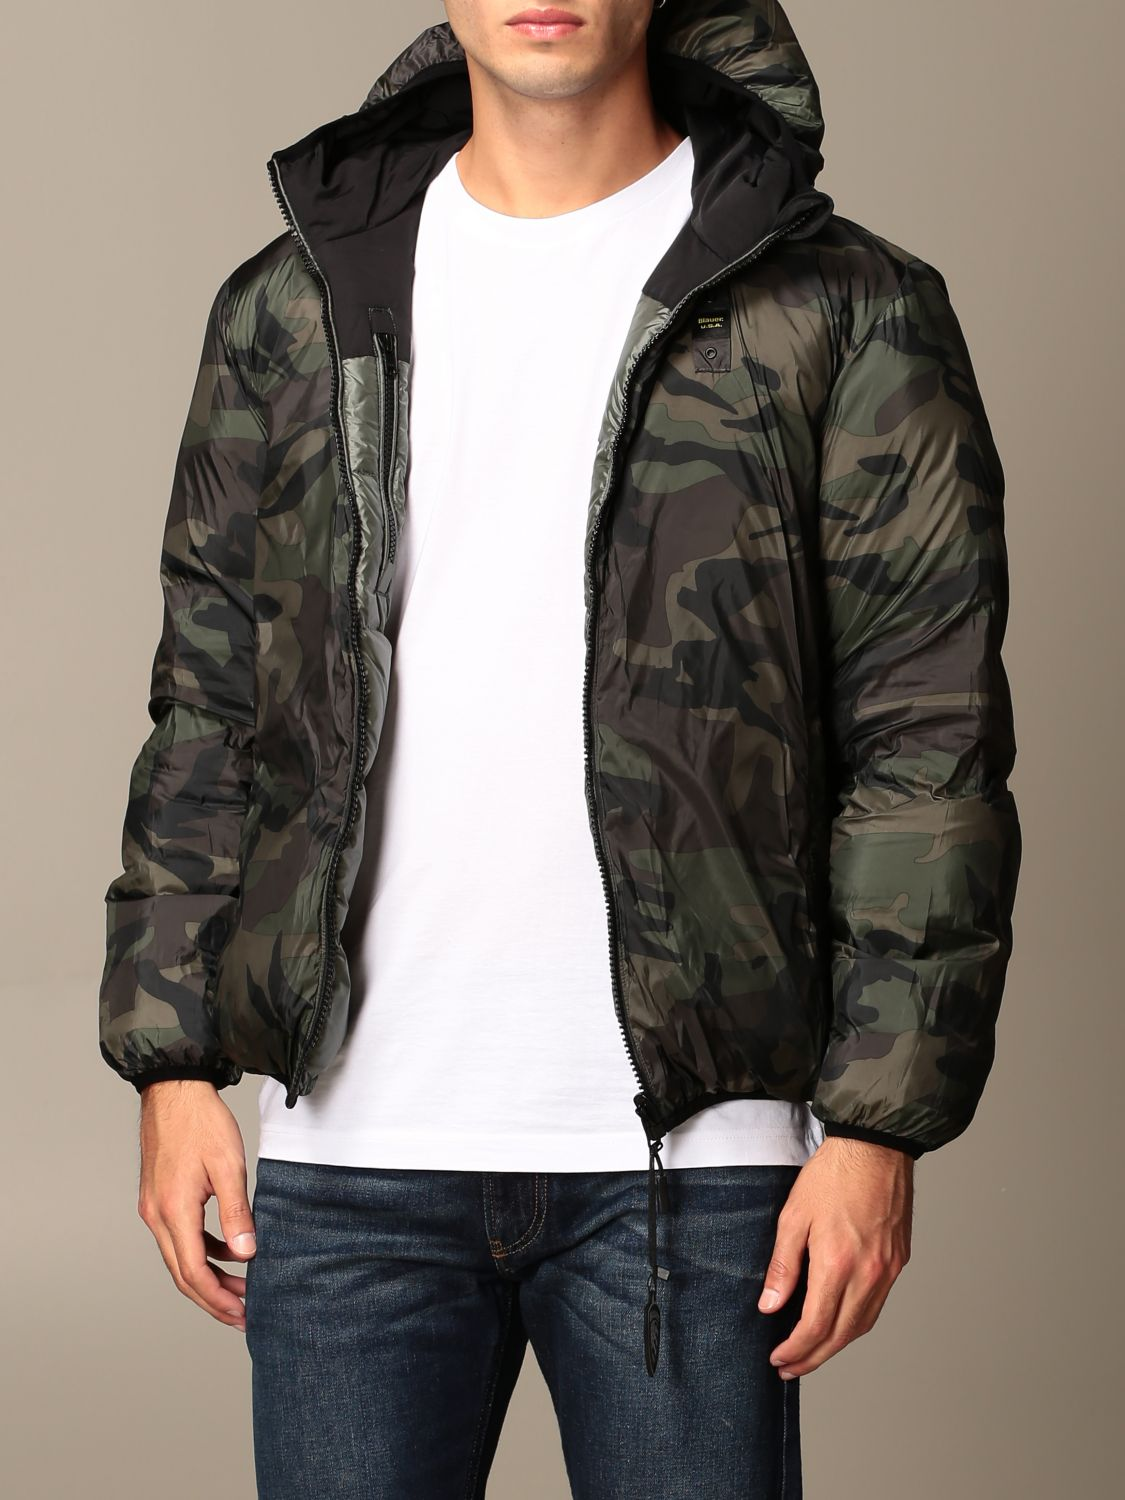 Jacket Blauer: Coat men Blauer green 3